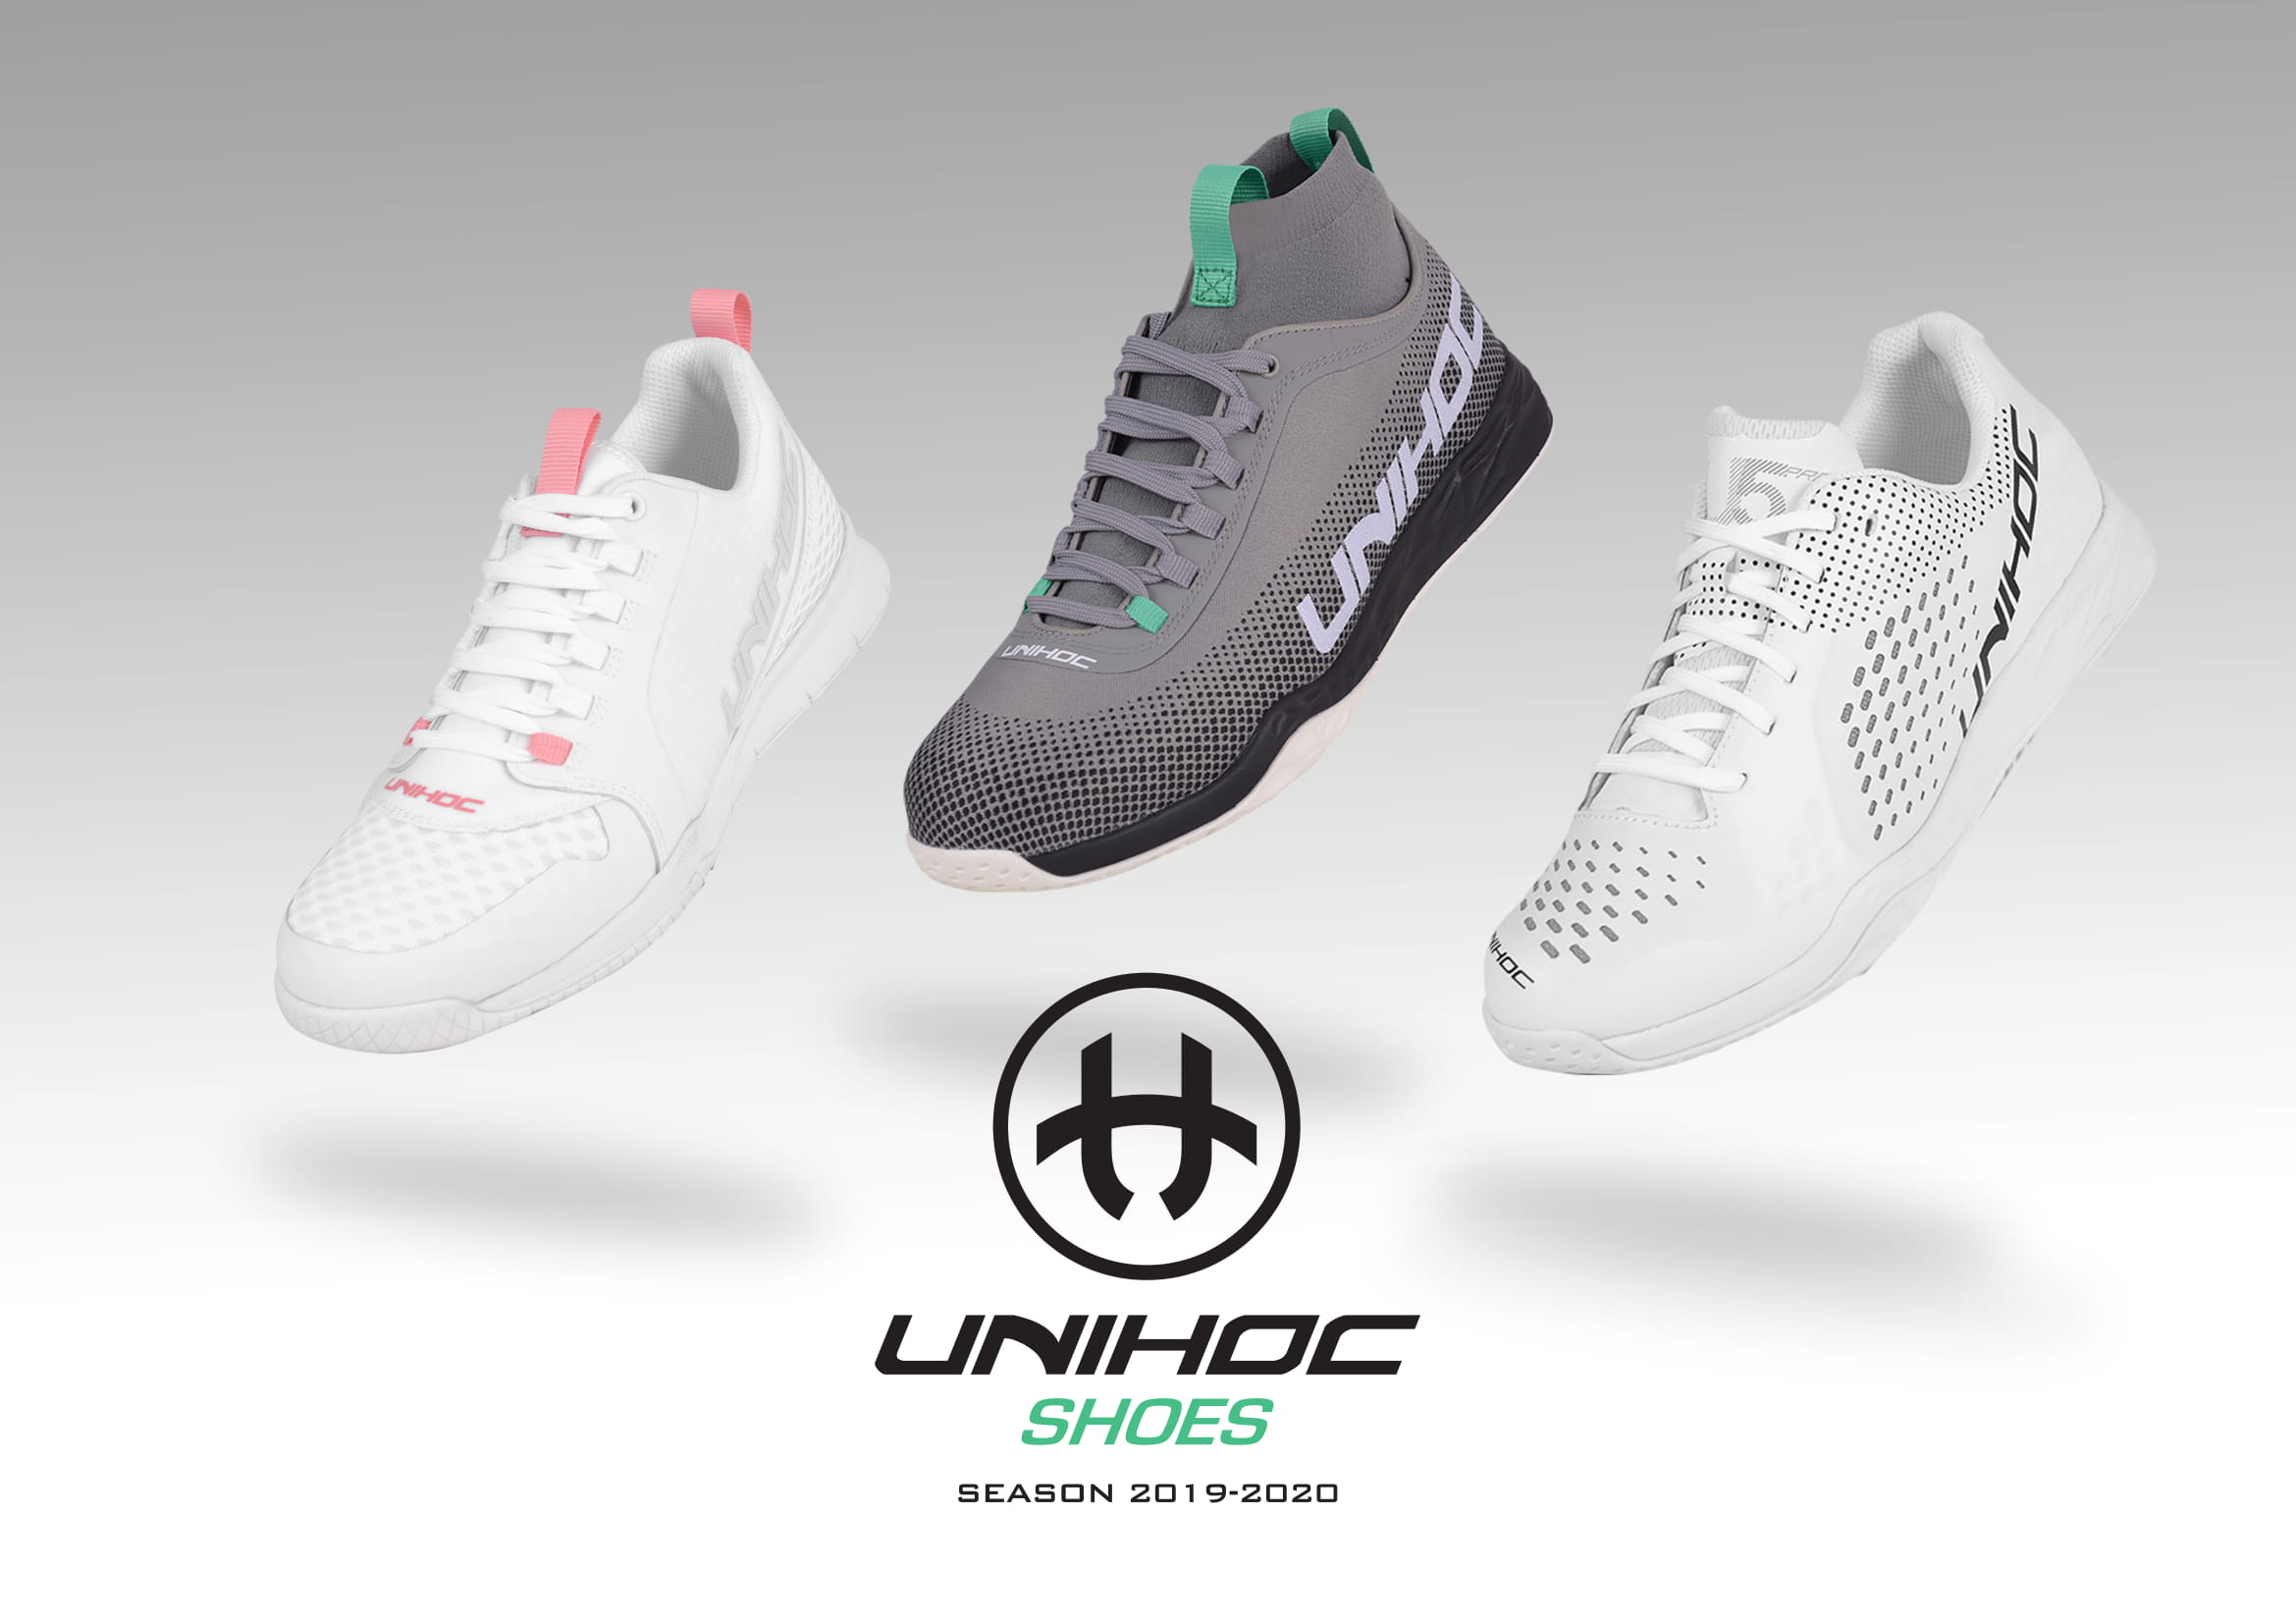 UNIHOC SHOES FOLDER 19-20-01.jpg